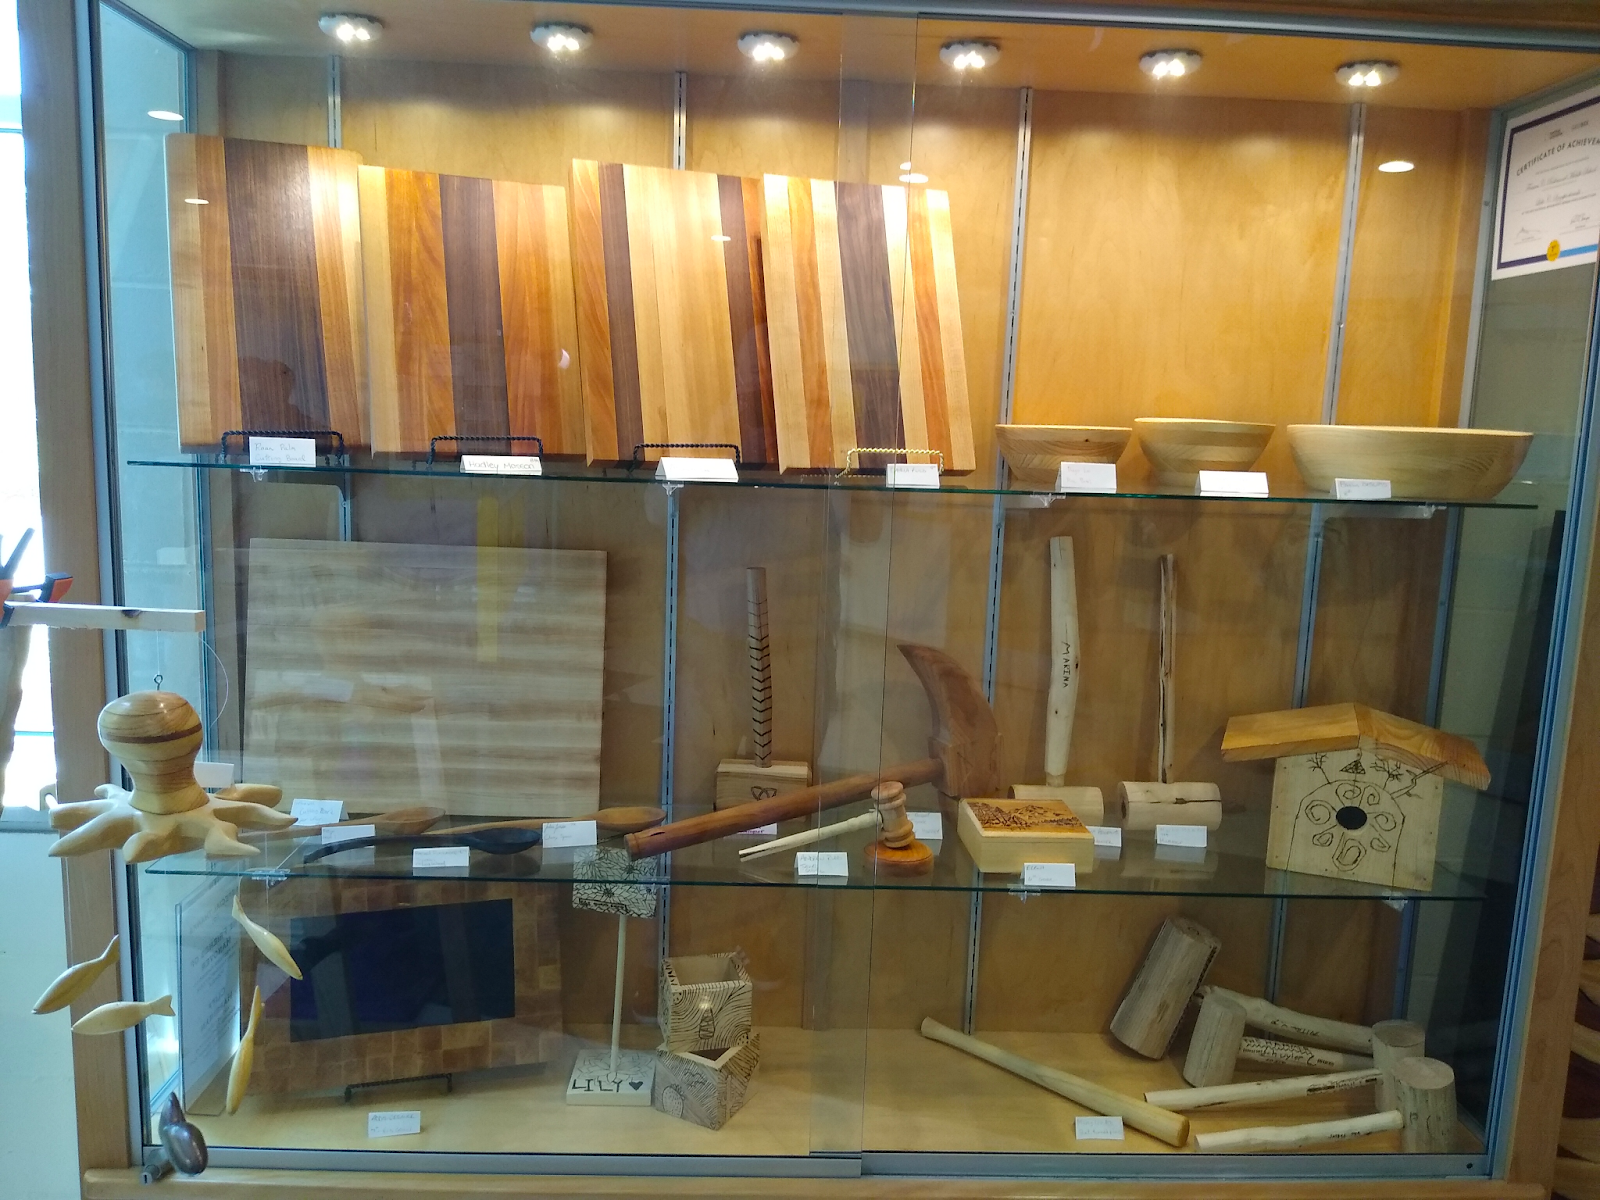 student woodworking projects in the display case